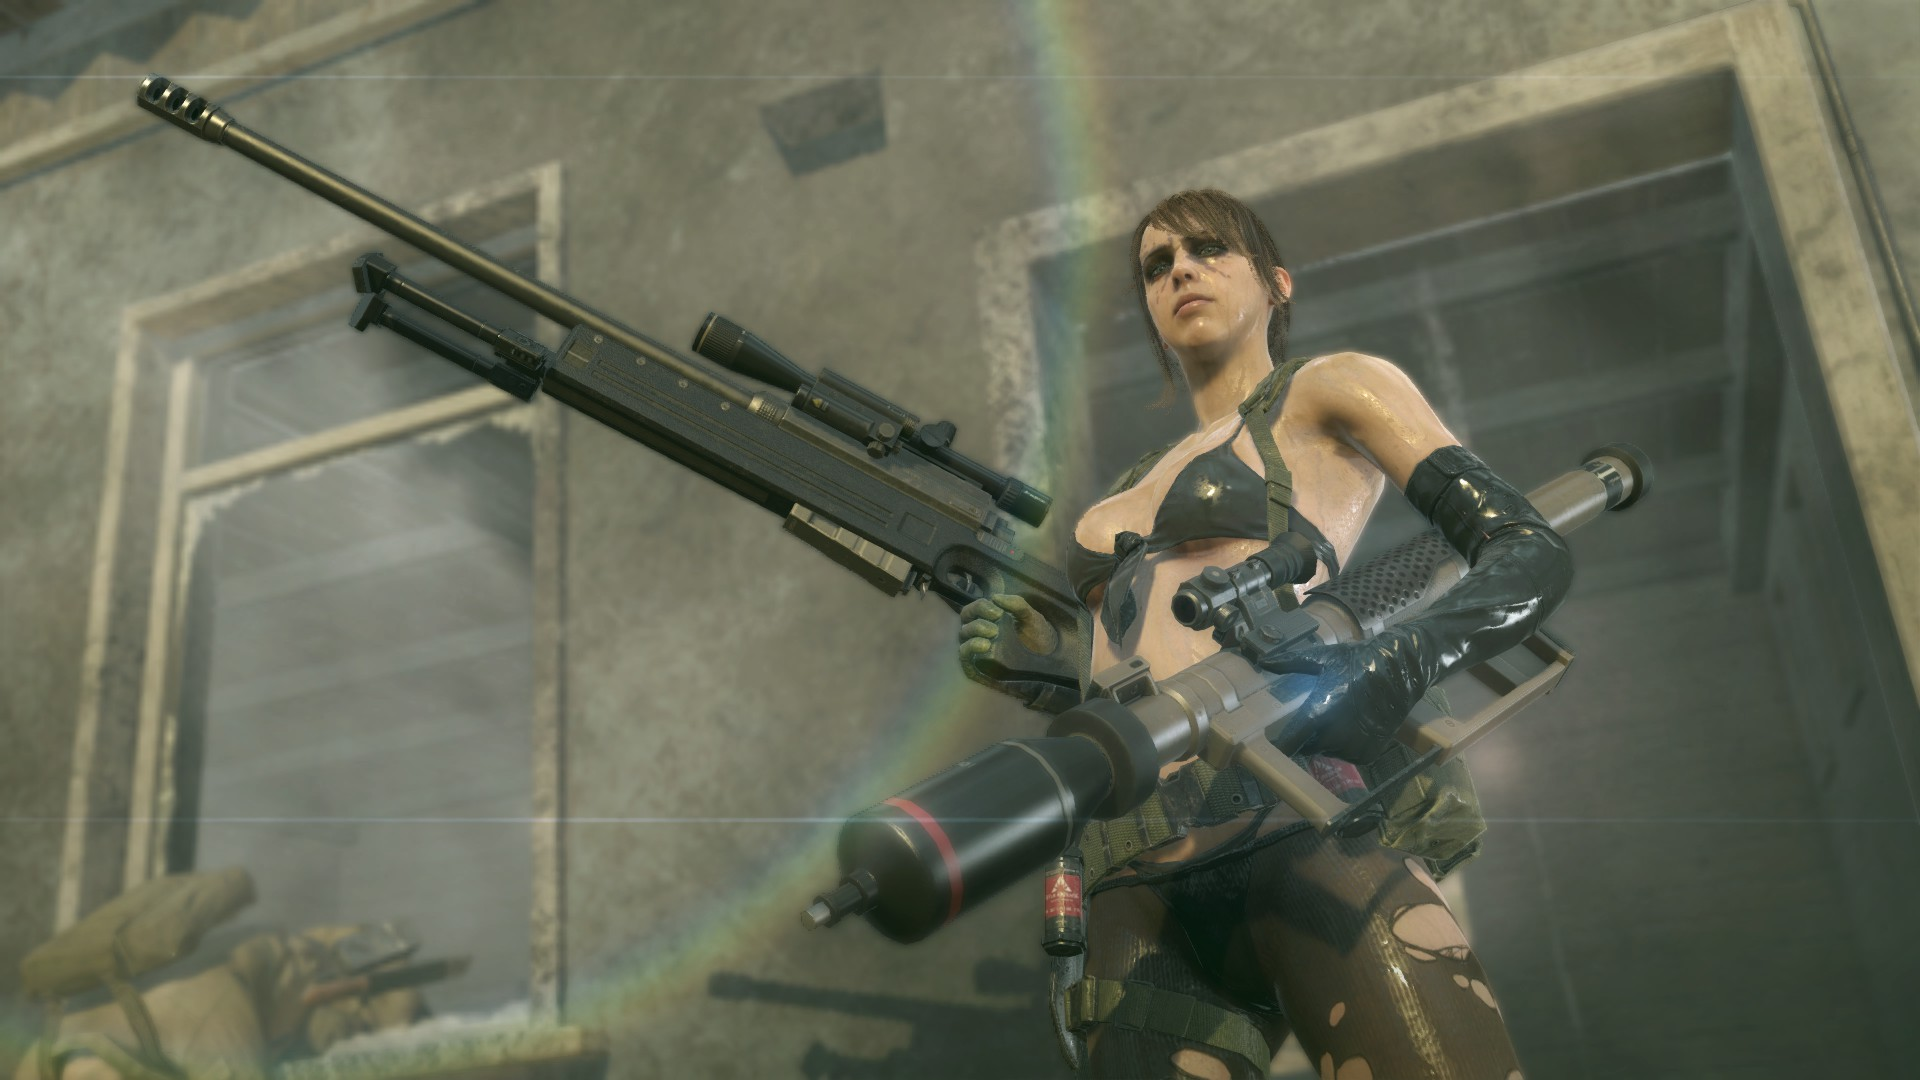 Metal Gear Solid V The Phantom Pain - Metal Gear Solid 5: The Phantom Pain